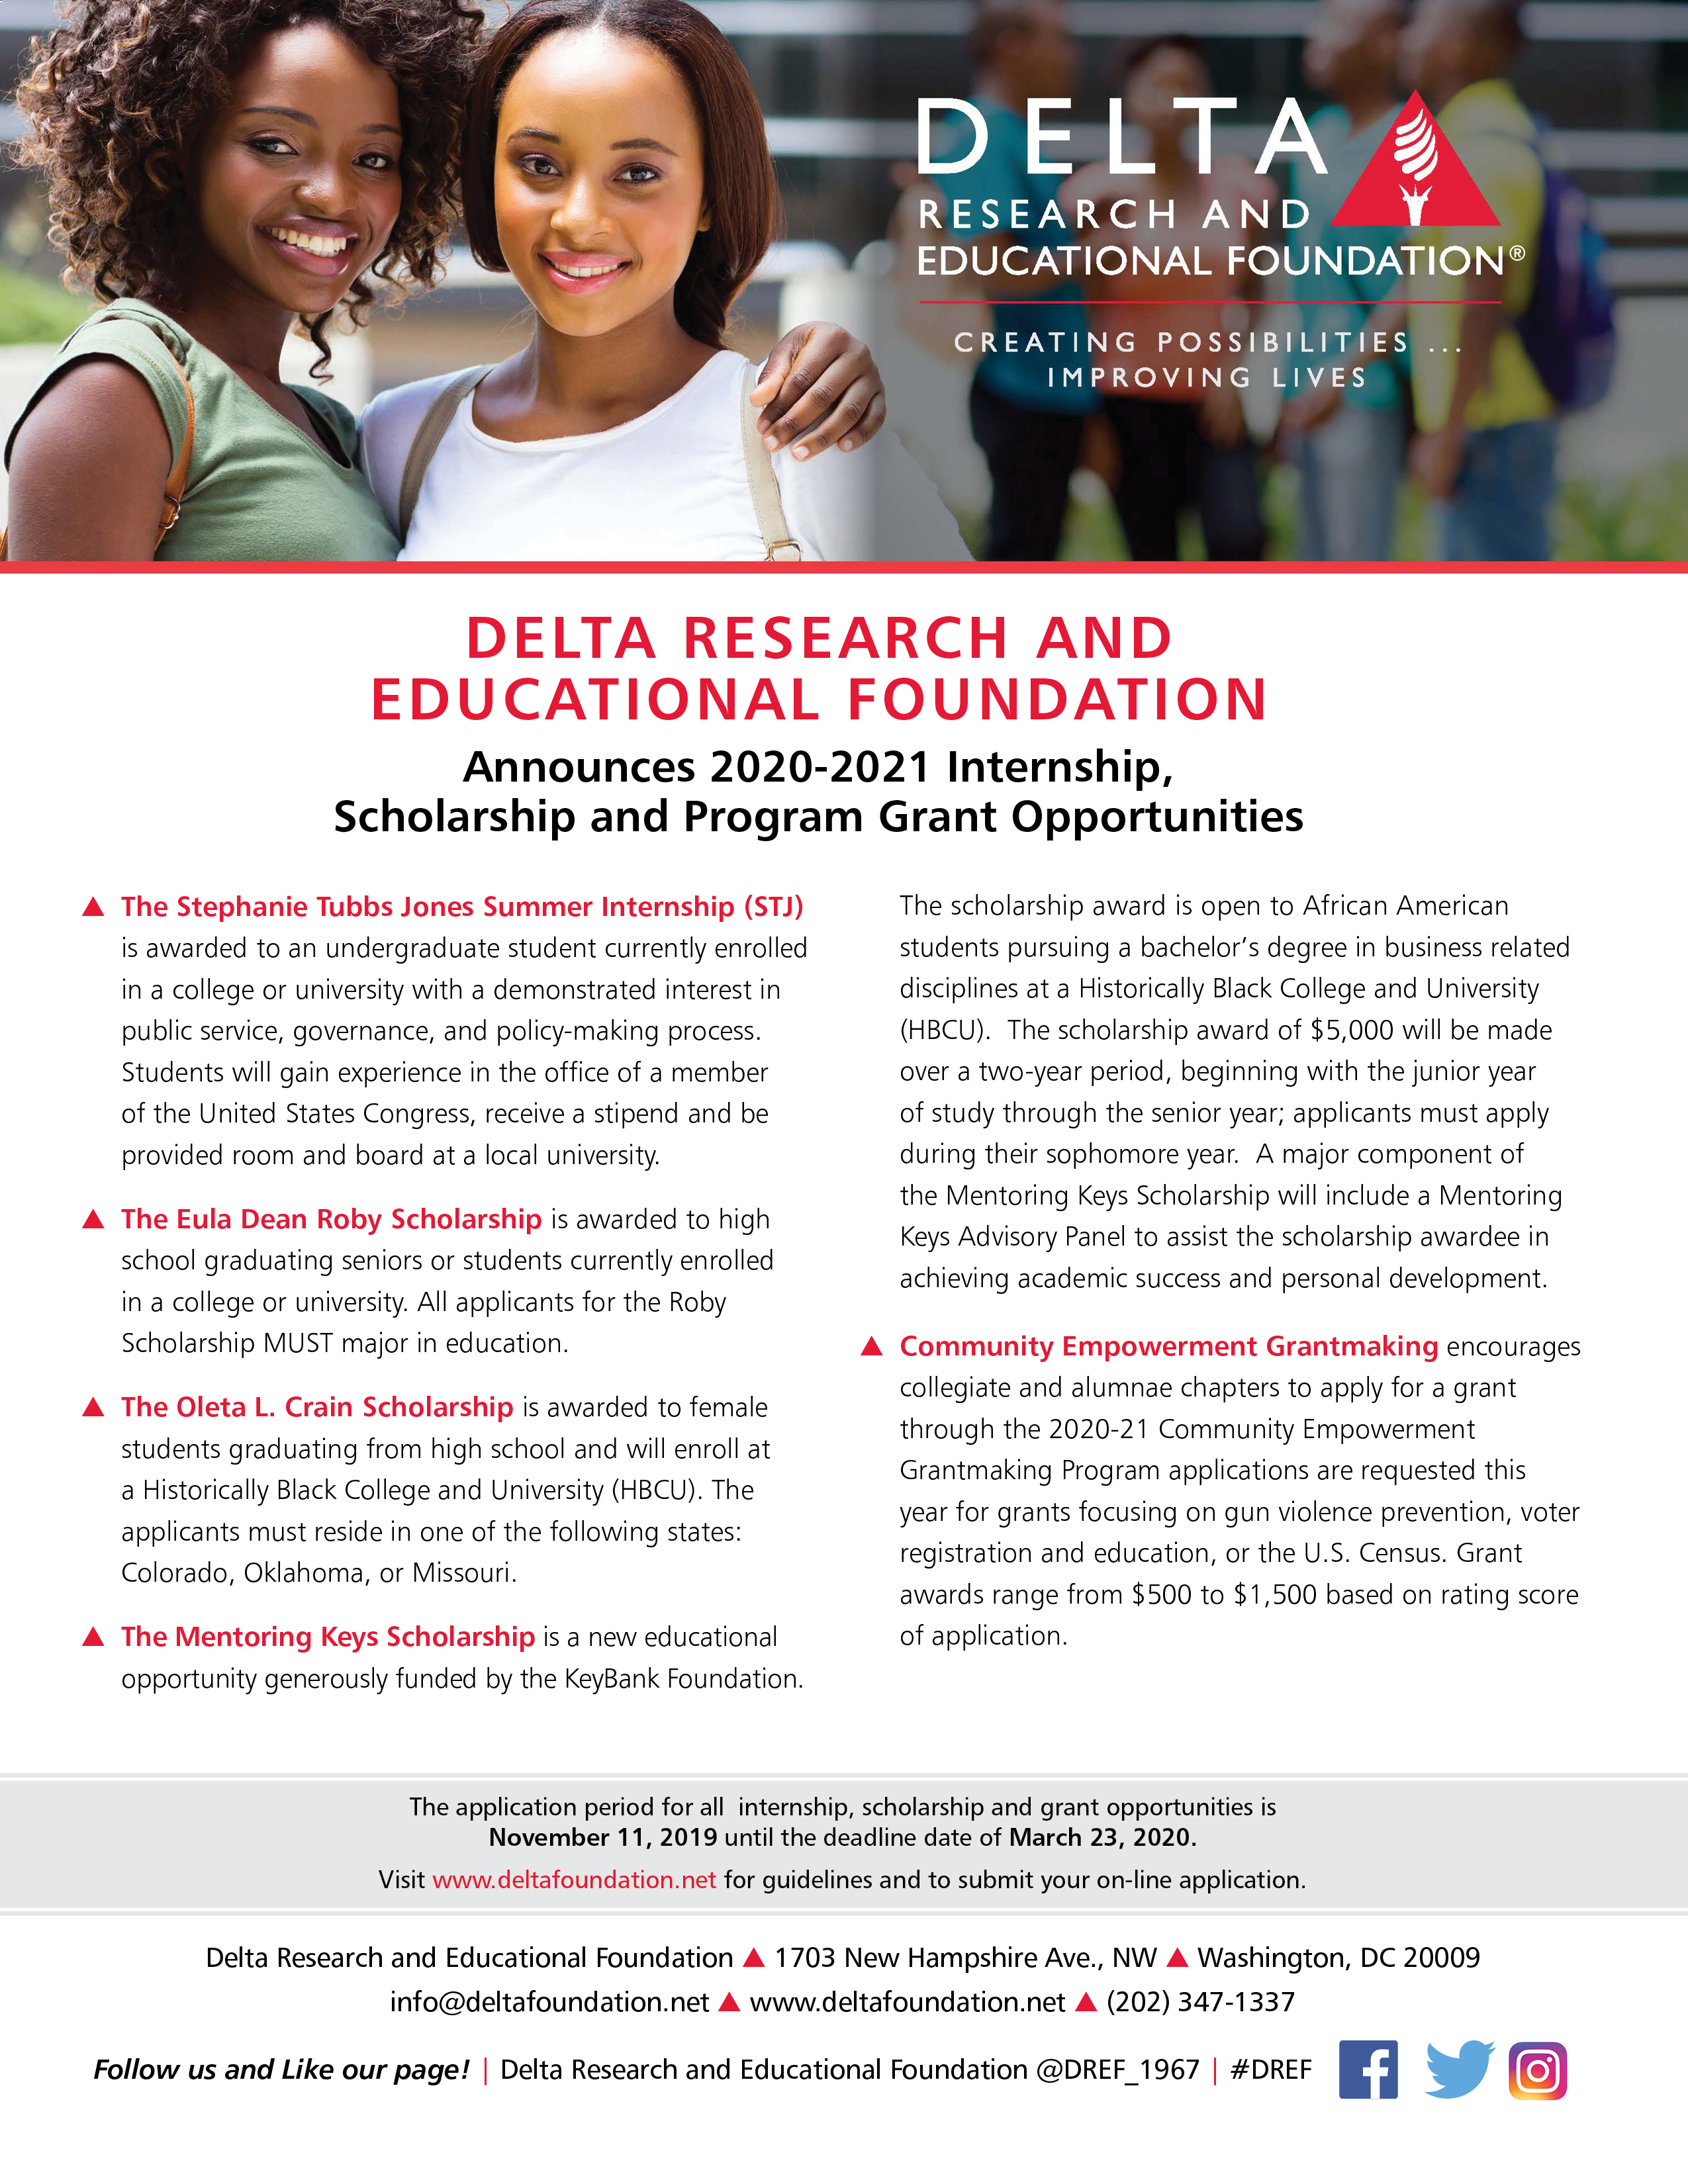 2020-2021 DREF Grant, Internship and Scholarship Opportunities Are Available Now!